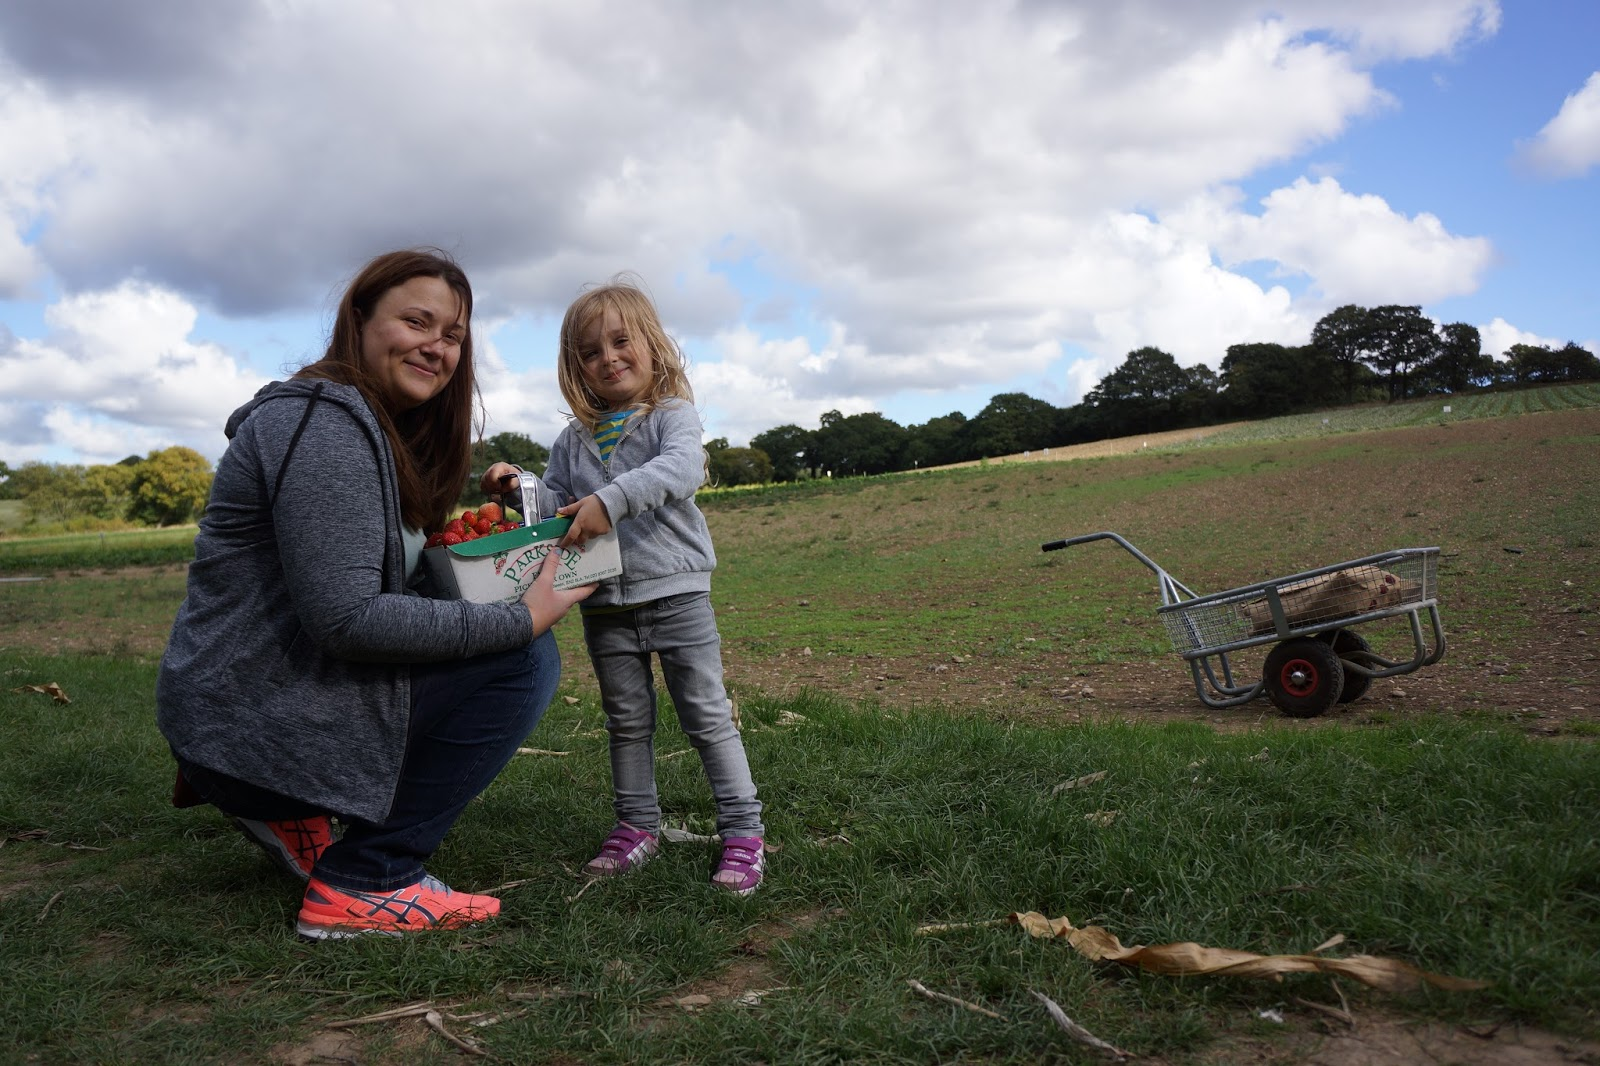 mum and daughter holding a basket of strawberries on a field